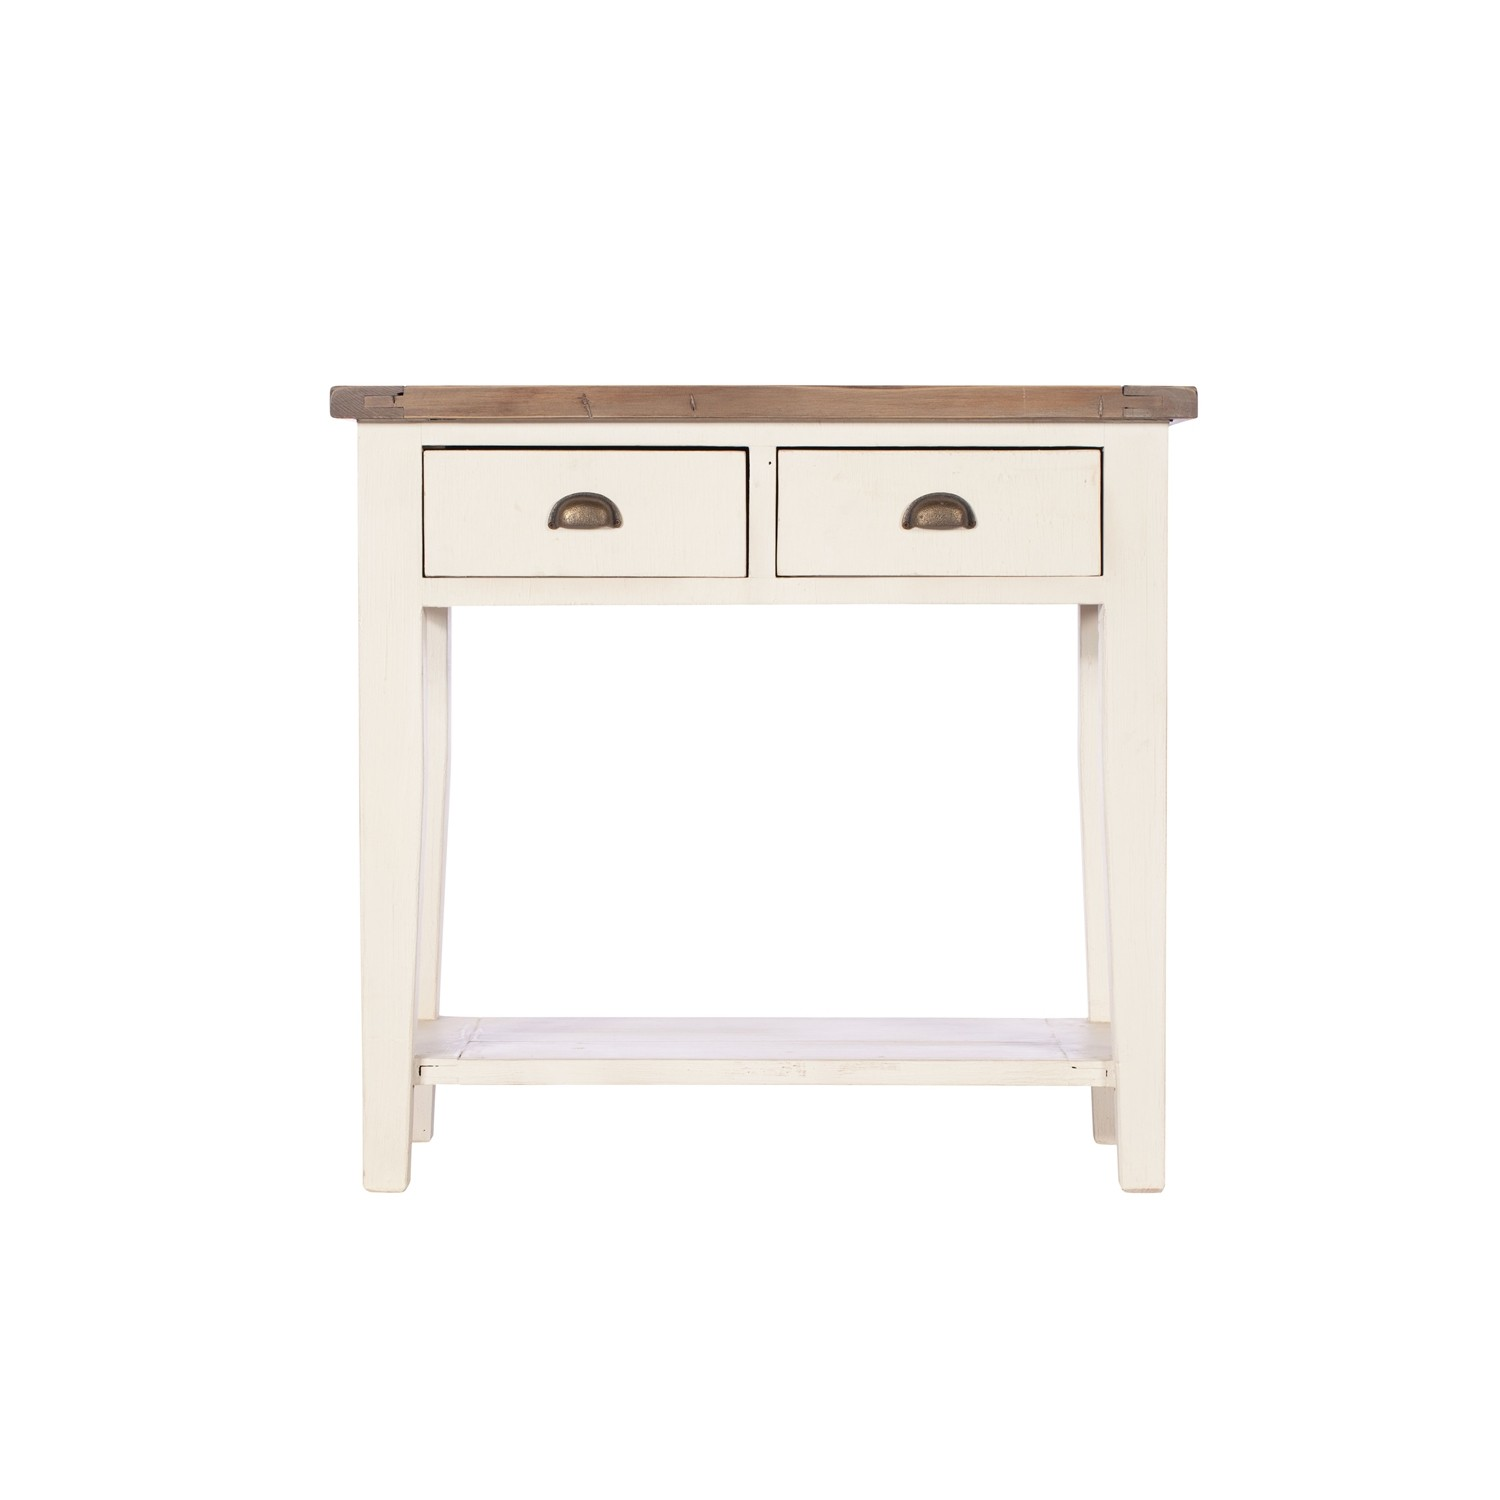 Casa cotswold 2 drawer hall table white leekes - White hall table uk ...